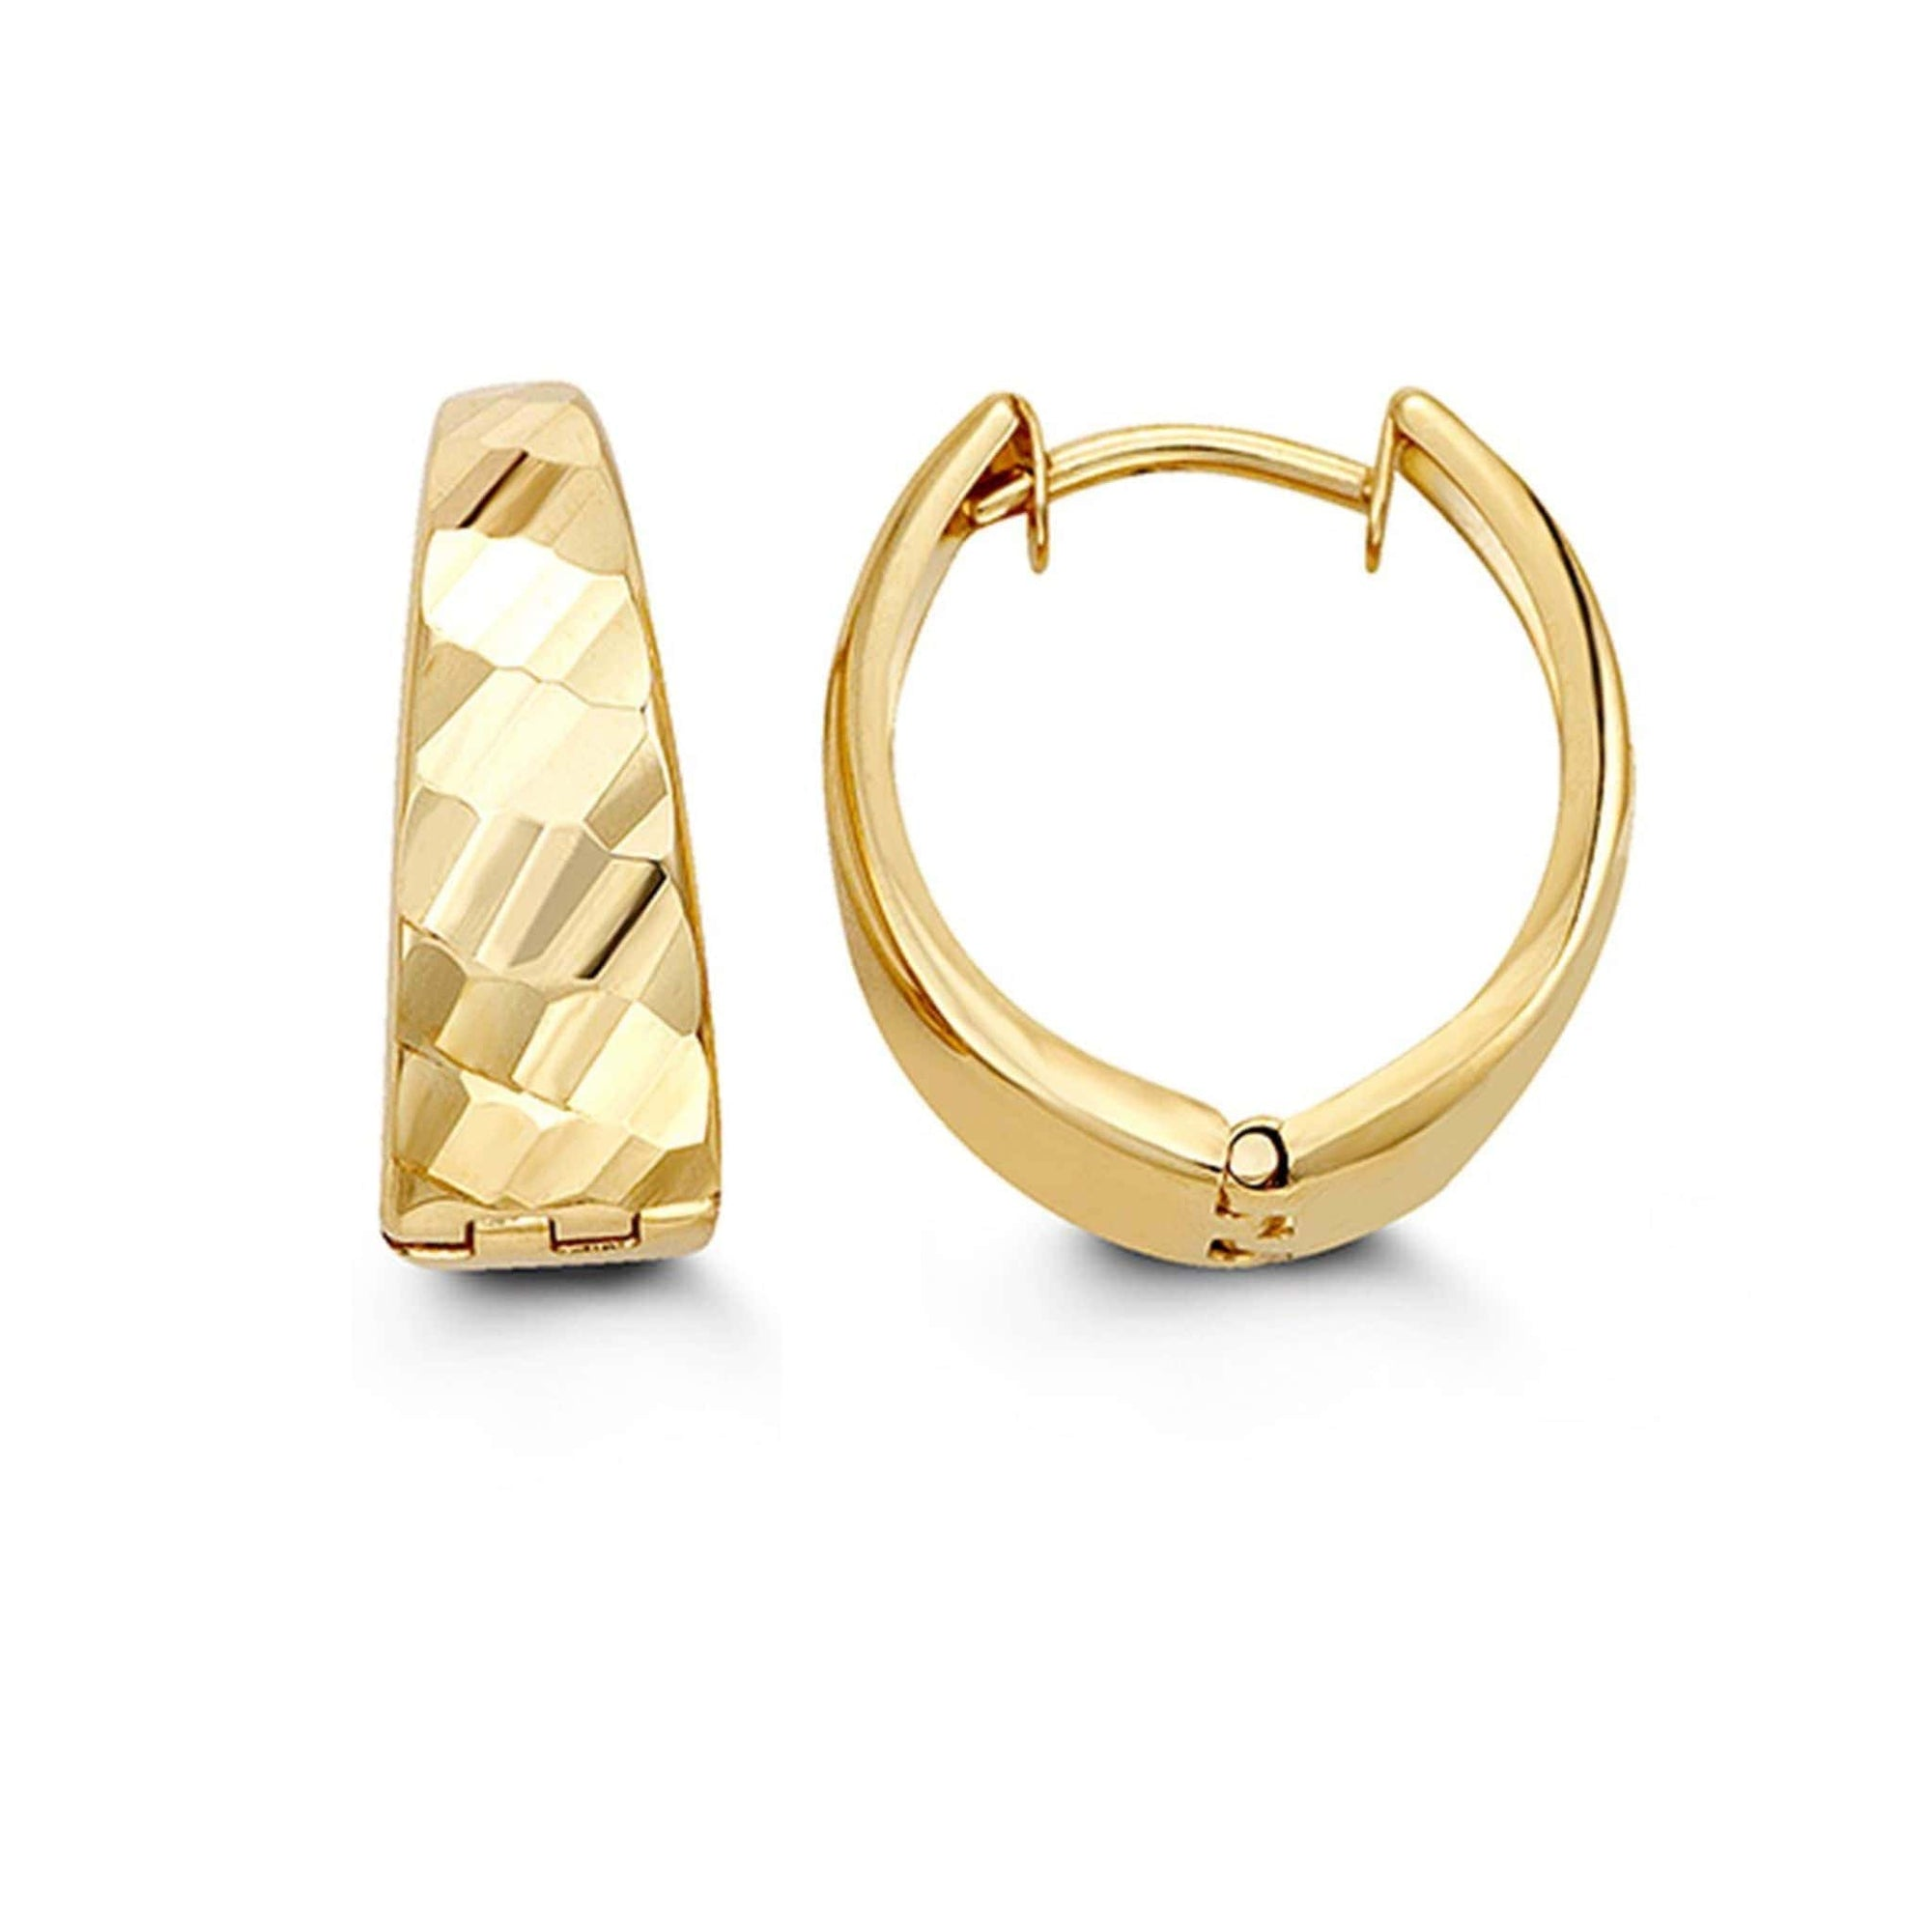 10K Diamond-Cut Huggie Hoop Earrings at Arman's Jewellers